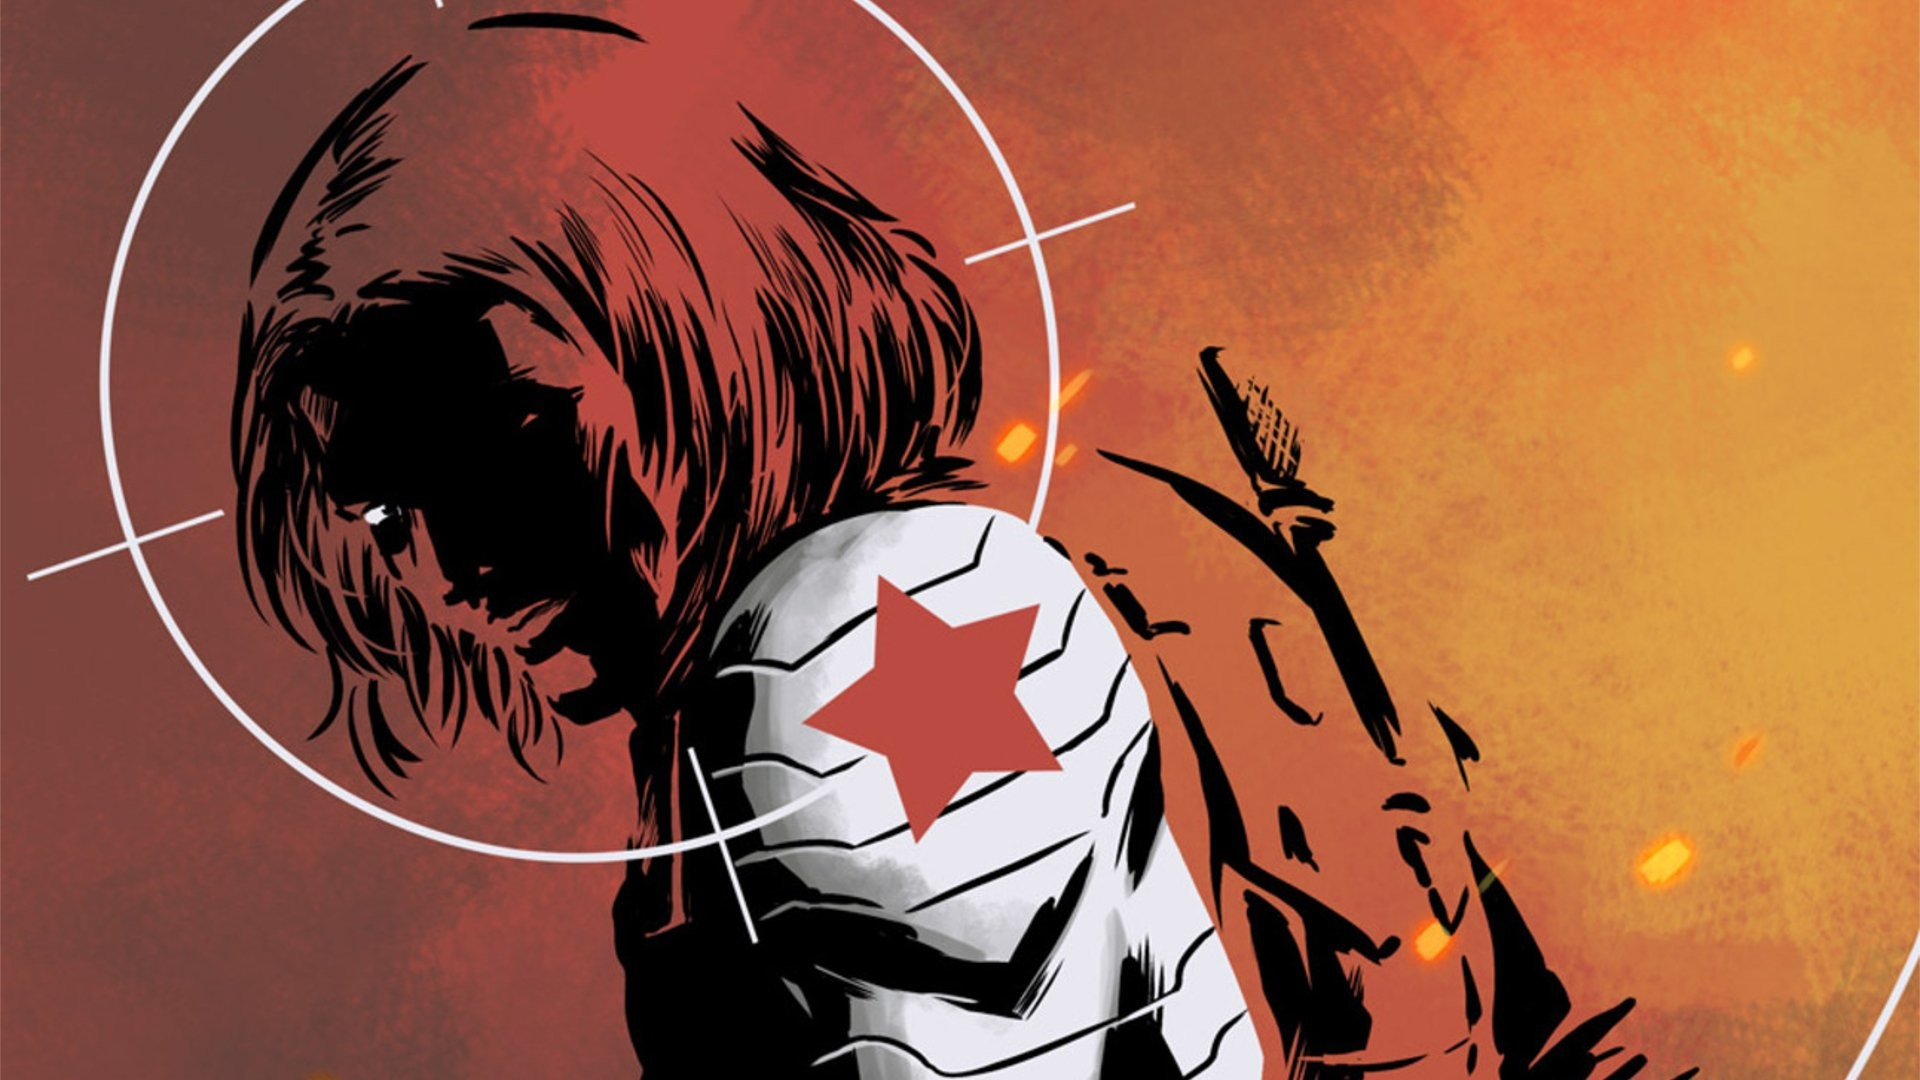 1920x1080 Comics - Winter Soldier Marvel Comics Bucky Barnes Wallpaper